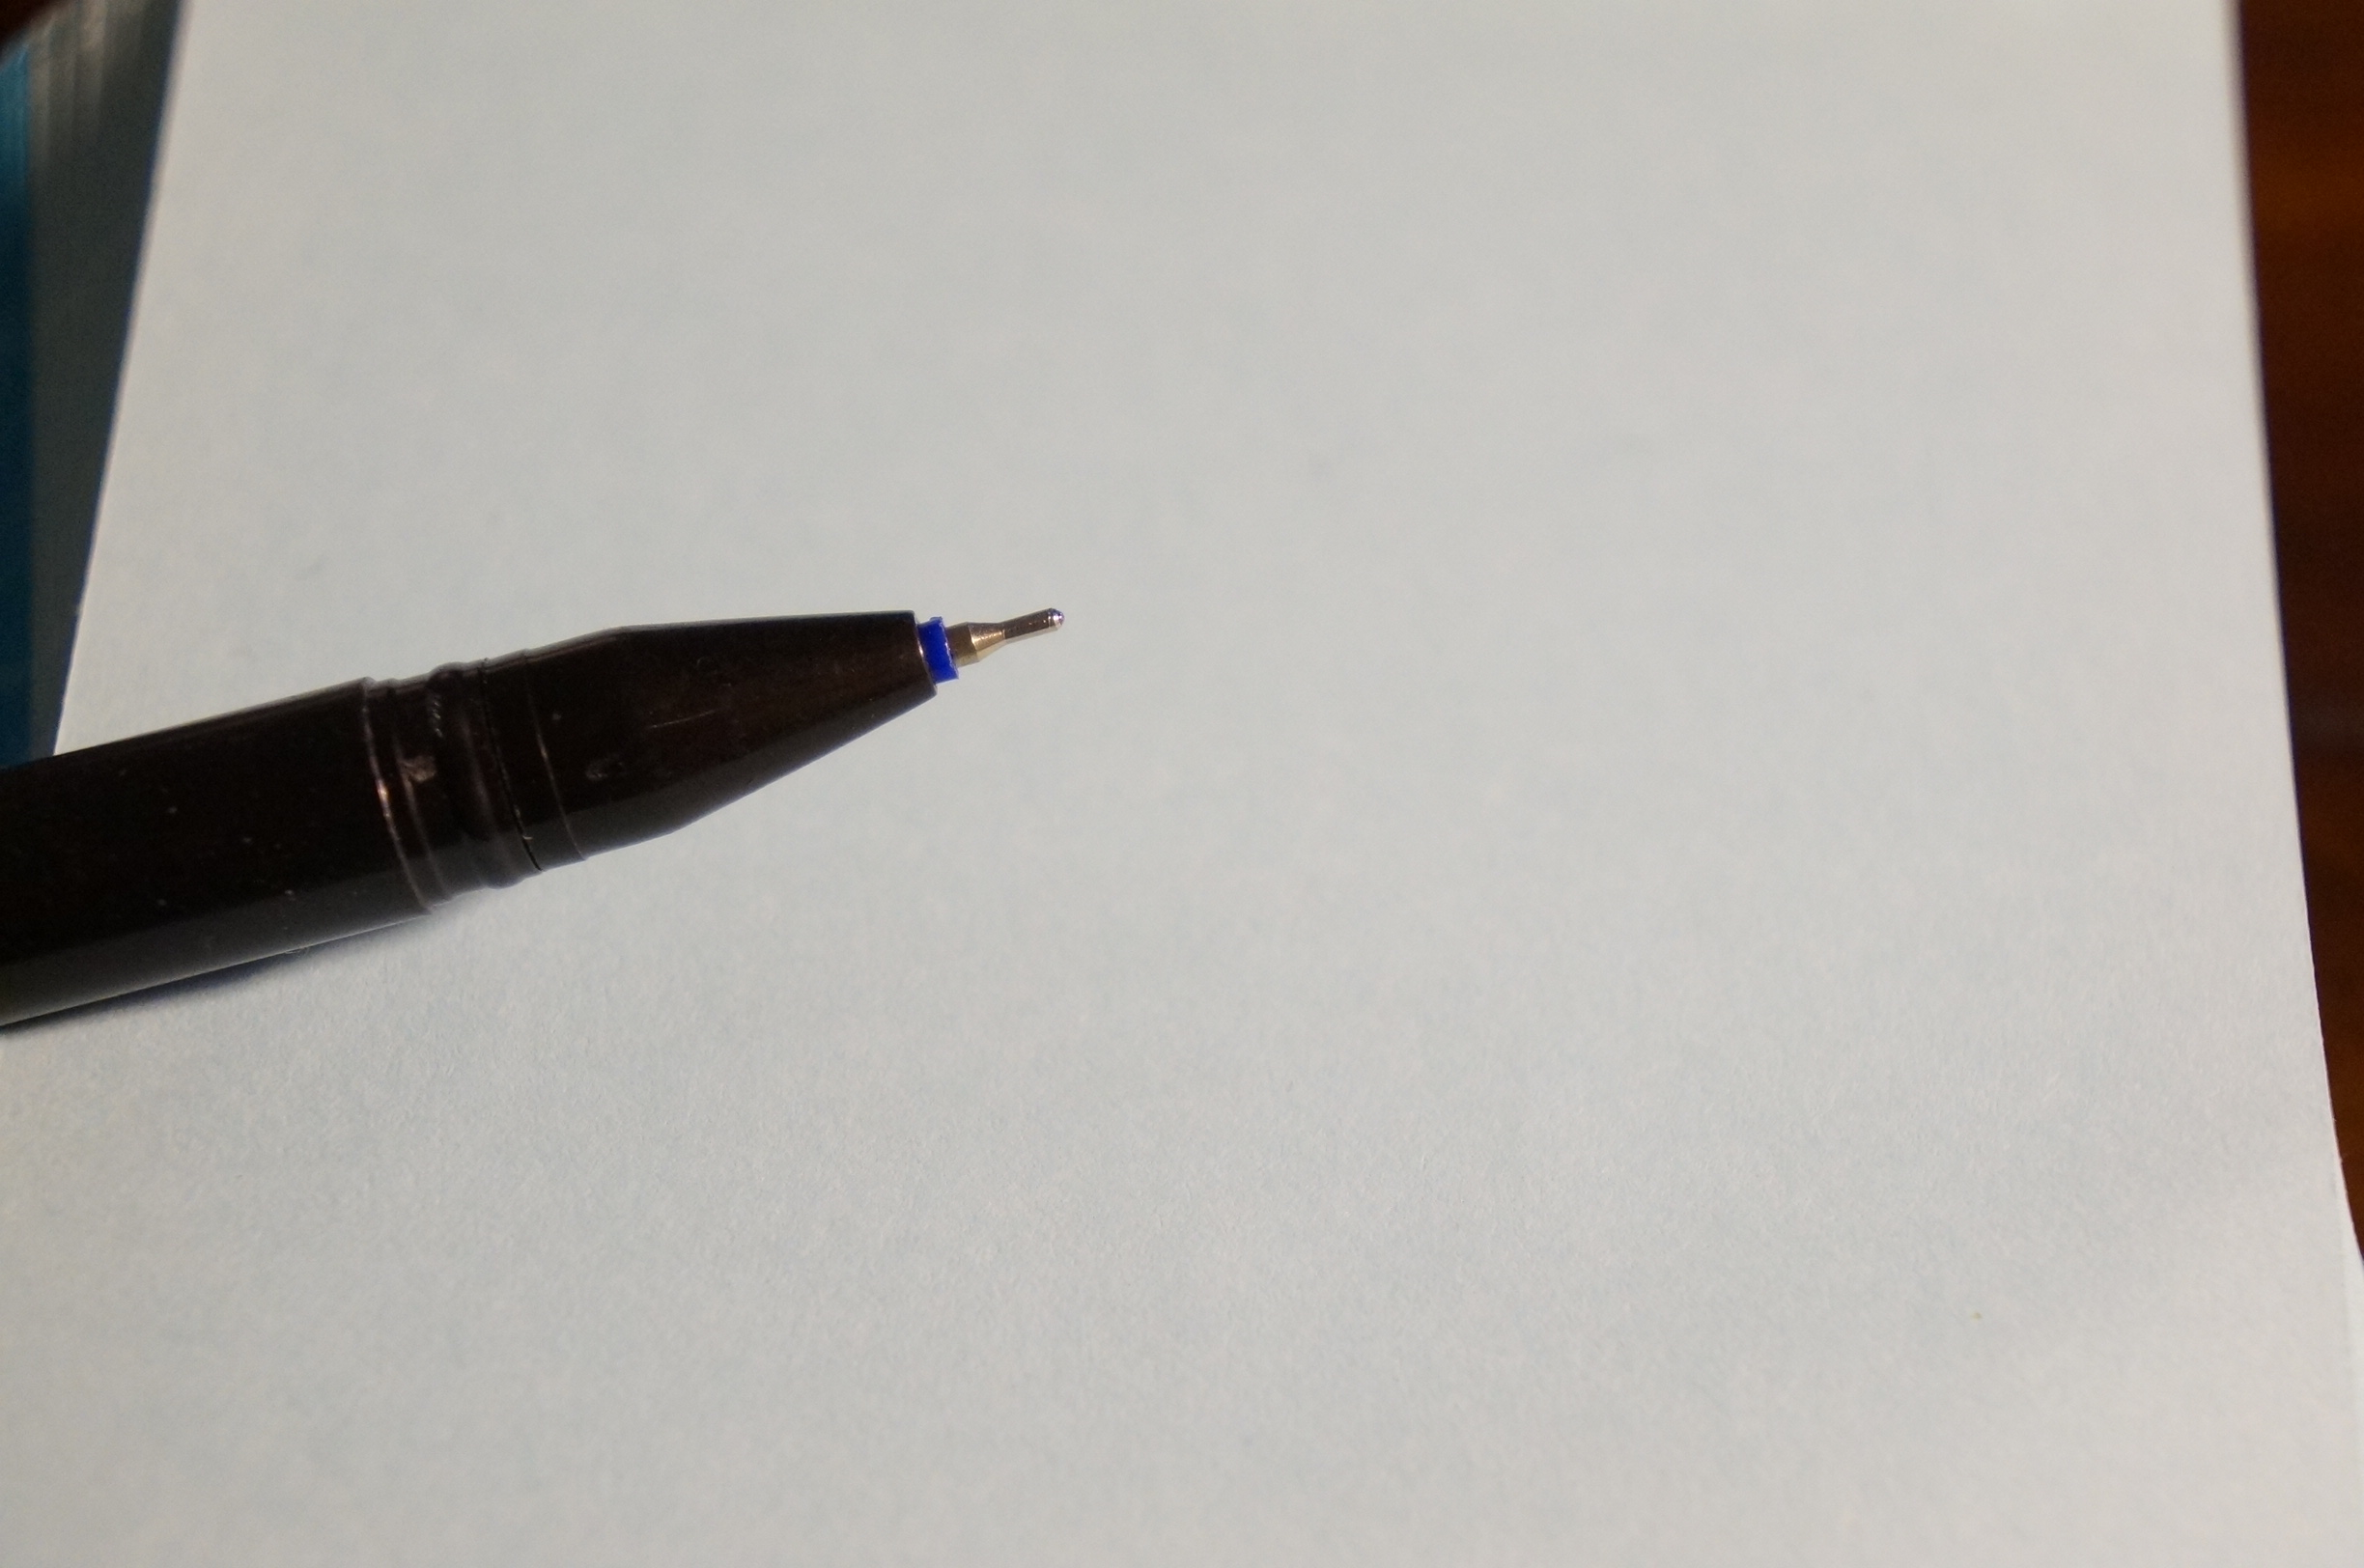 The complimentary pen.